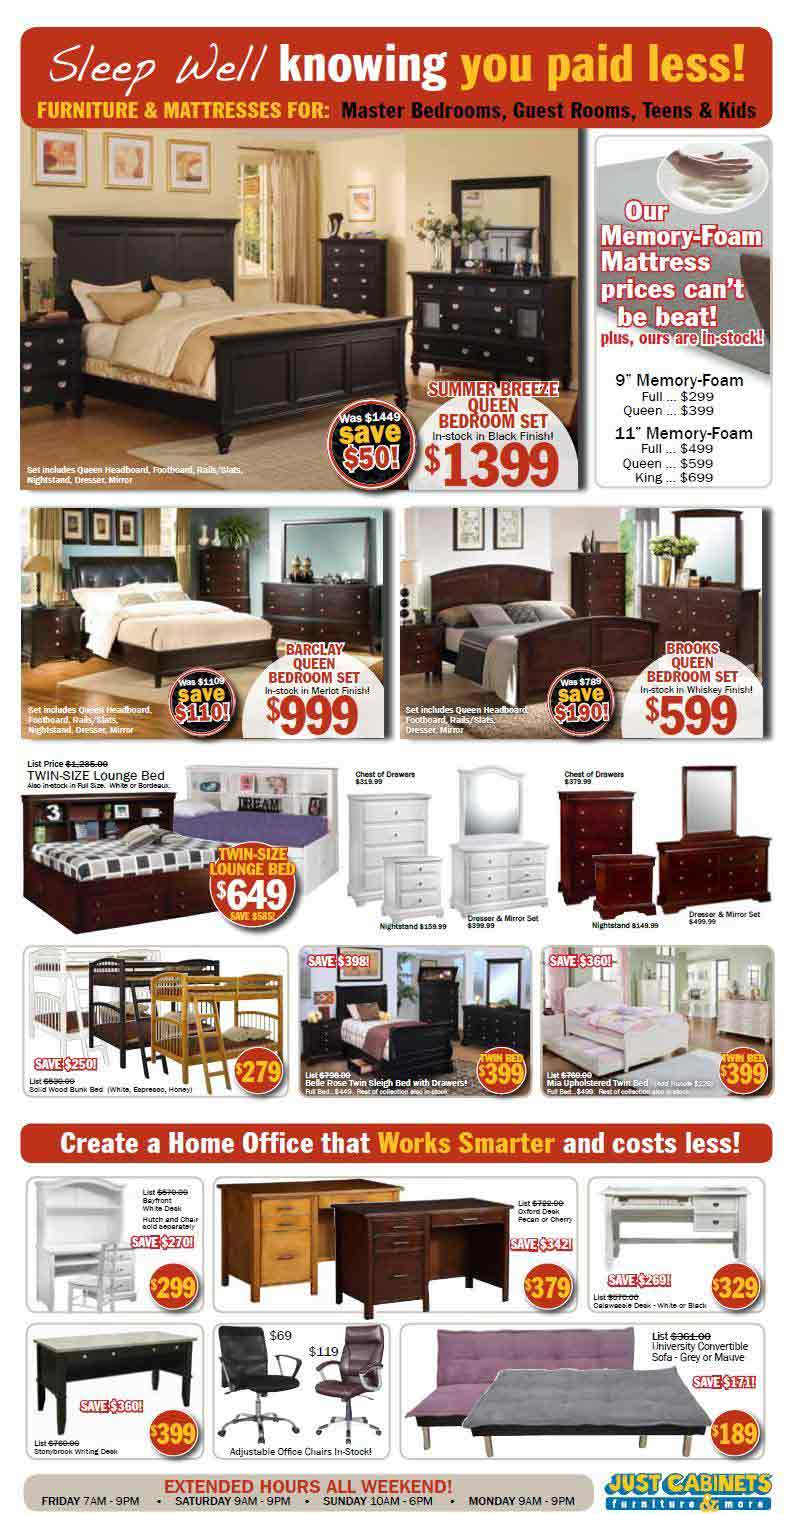 Just Cabinets Furniture Black Friday 2013 Ad - Find the ...